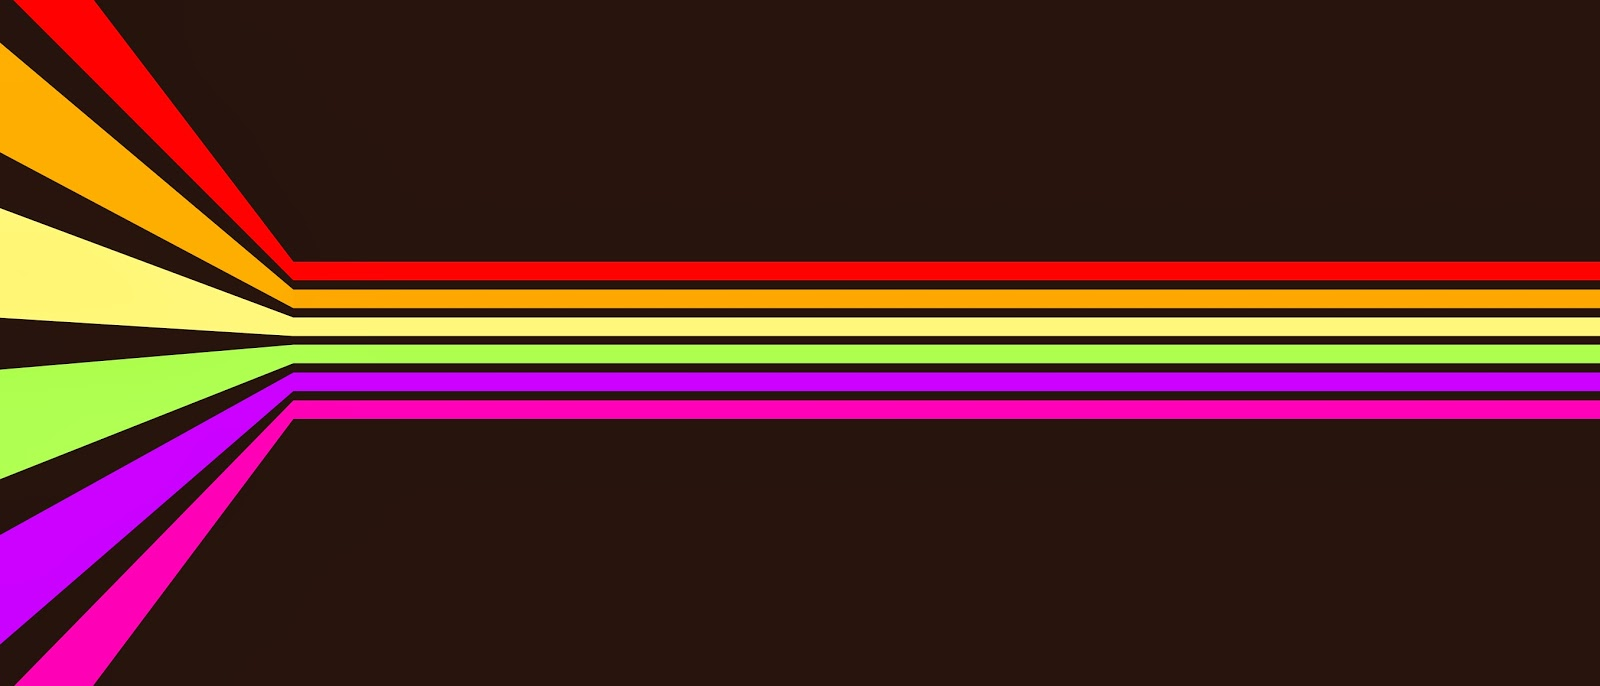 Fruitymixer S Wallpapers Perfect Rainbow Horizontal Lines HD Wallpapers Download Free Images Wallpaper [1000image.com]